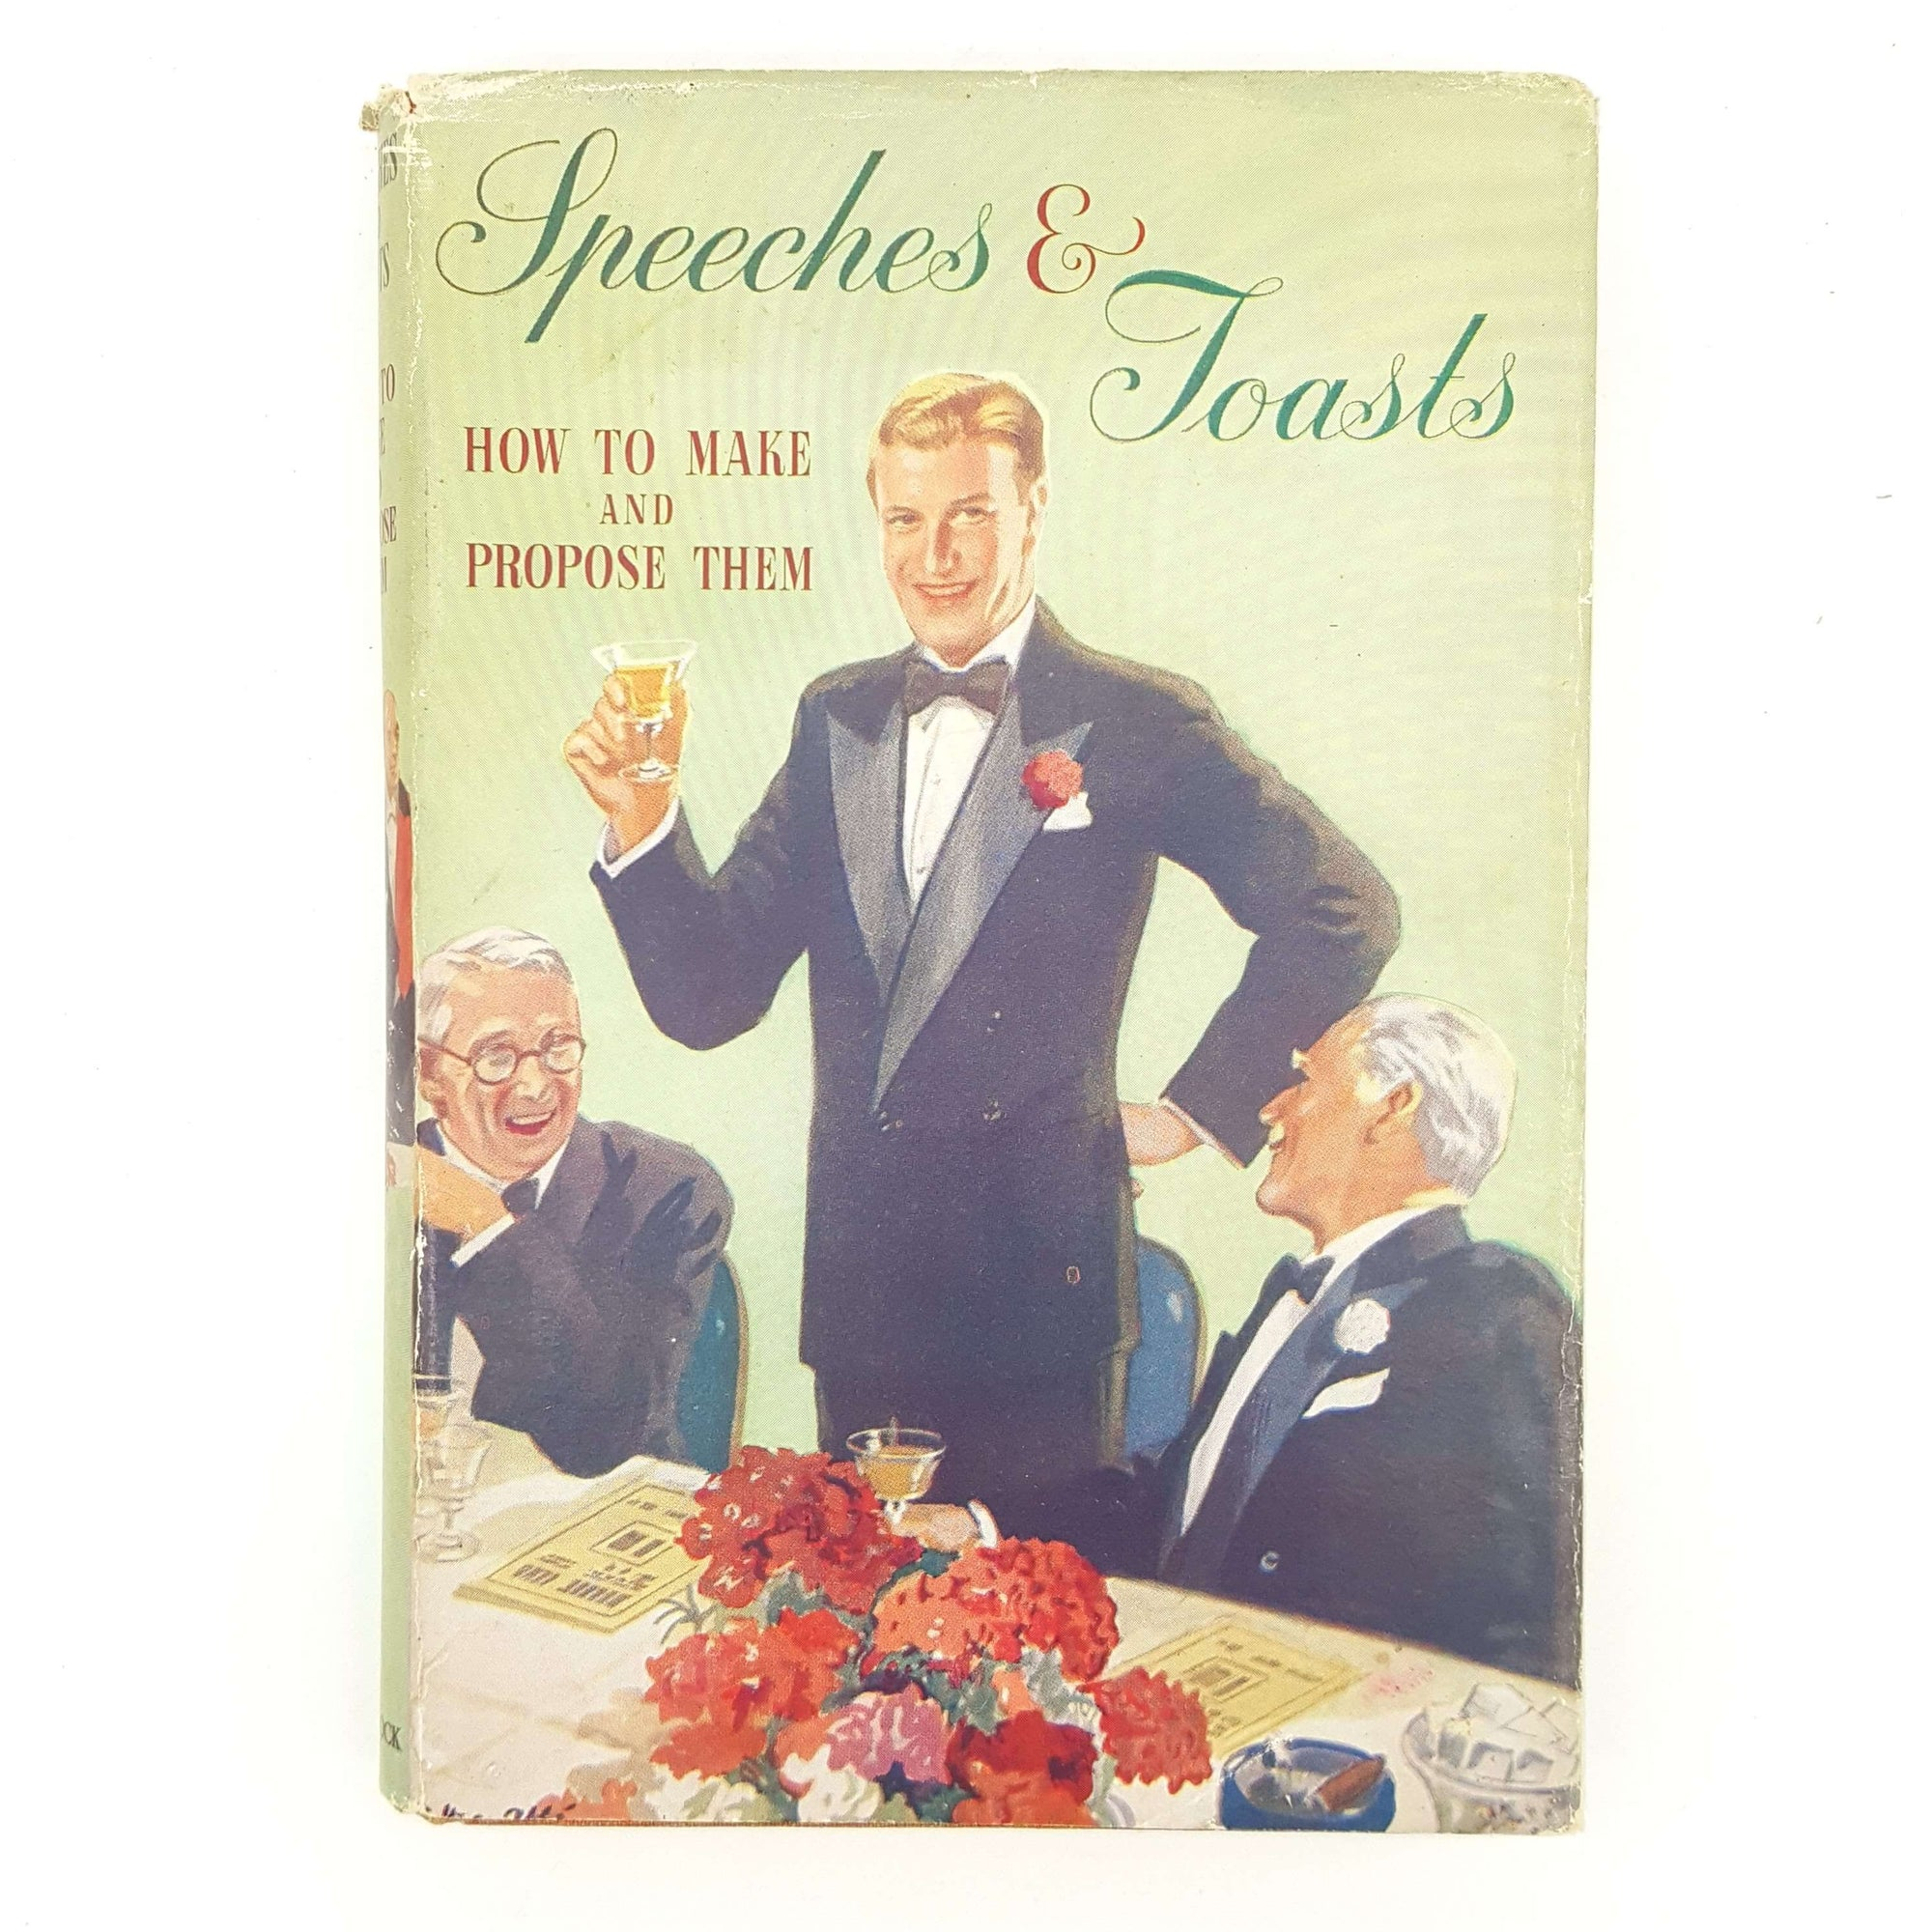 Speeches & Toasts - How to Make and Propose Them by Leslie F. Stem Country House Library